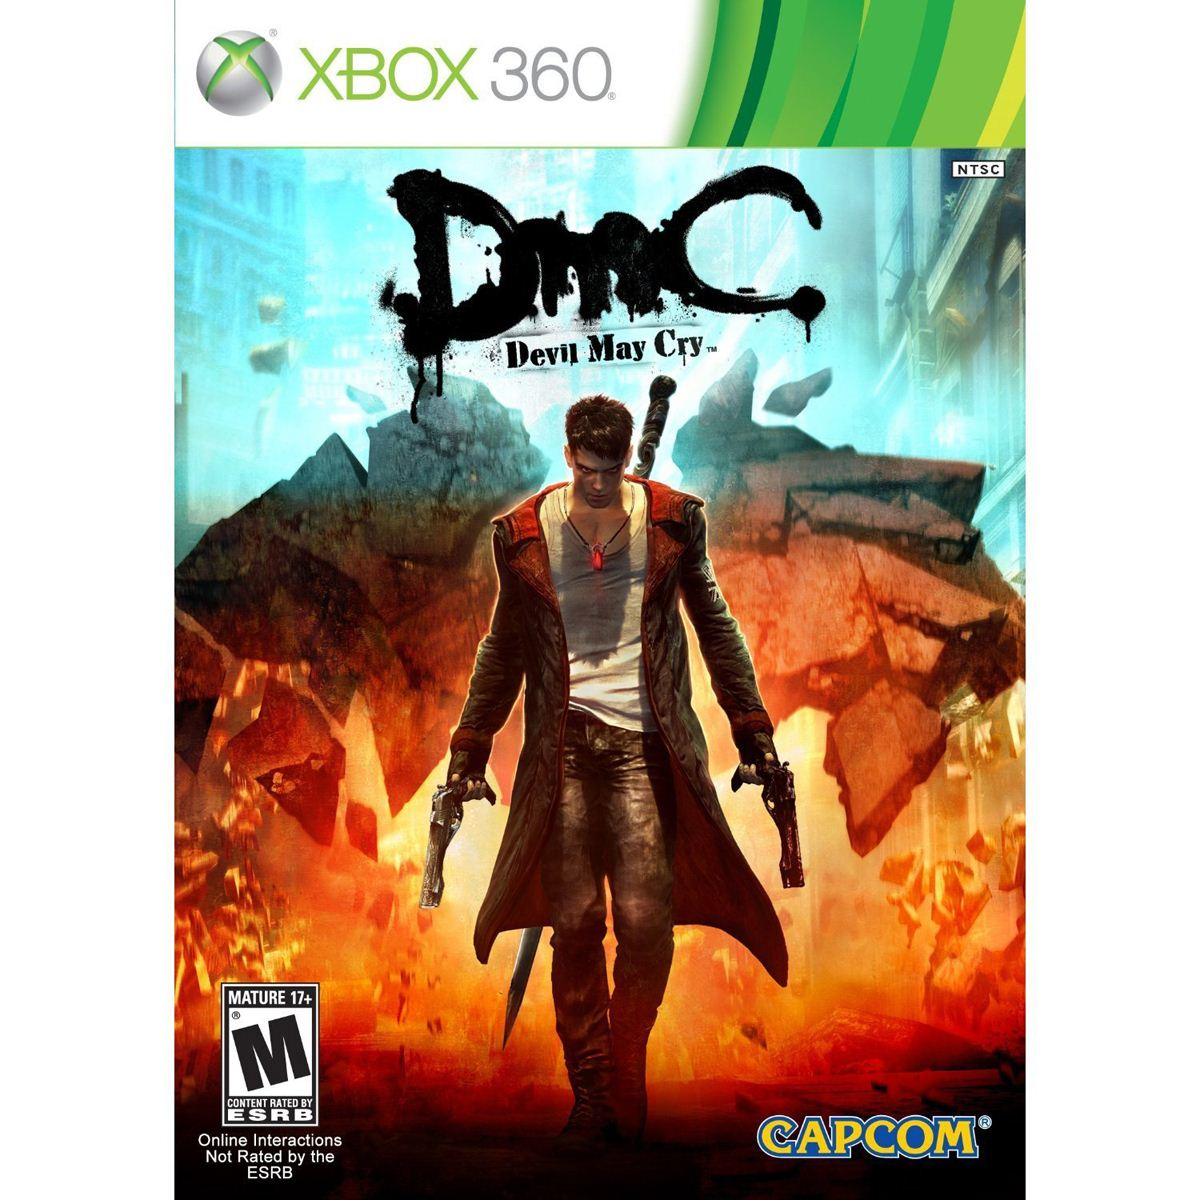 Xbox 360 devil may cry  - Sanborns